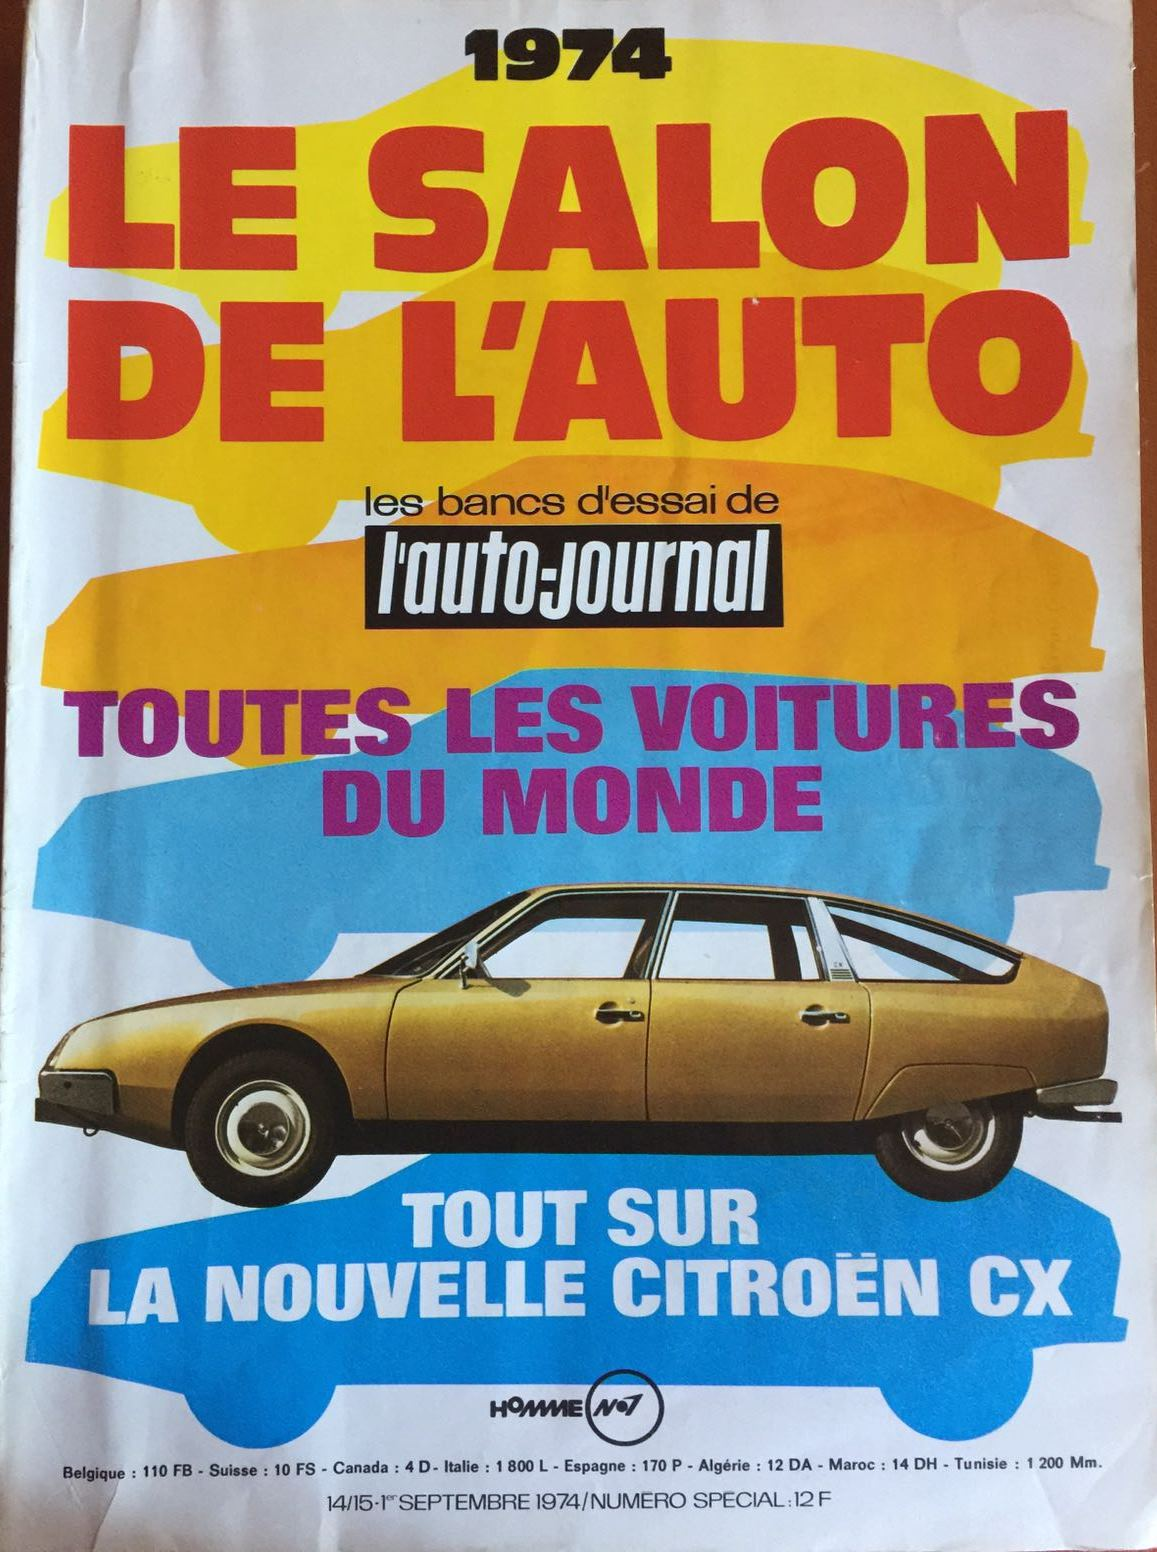 le salon de l auto essai de l auto journal 1974 de nederlandse fiat 130 website. Black Bedroom Furniture Sets. Home Design Ideas